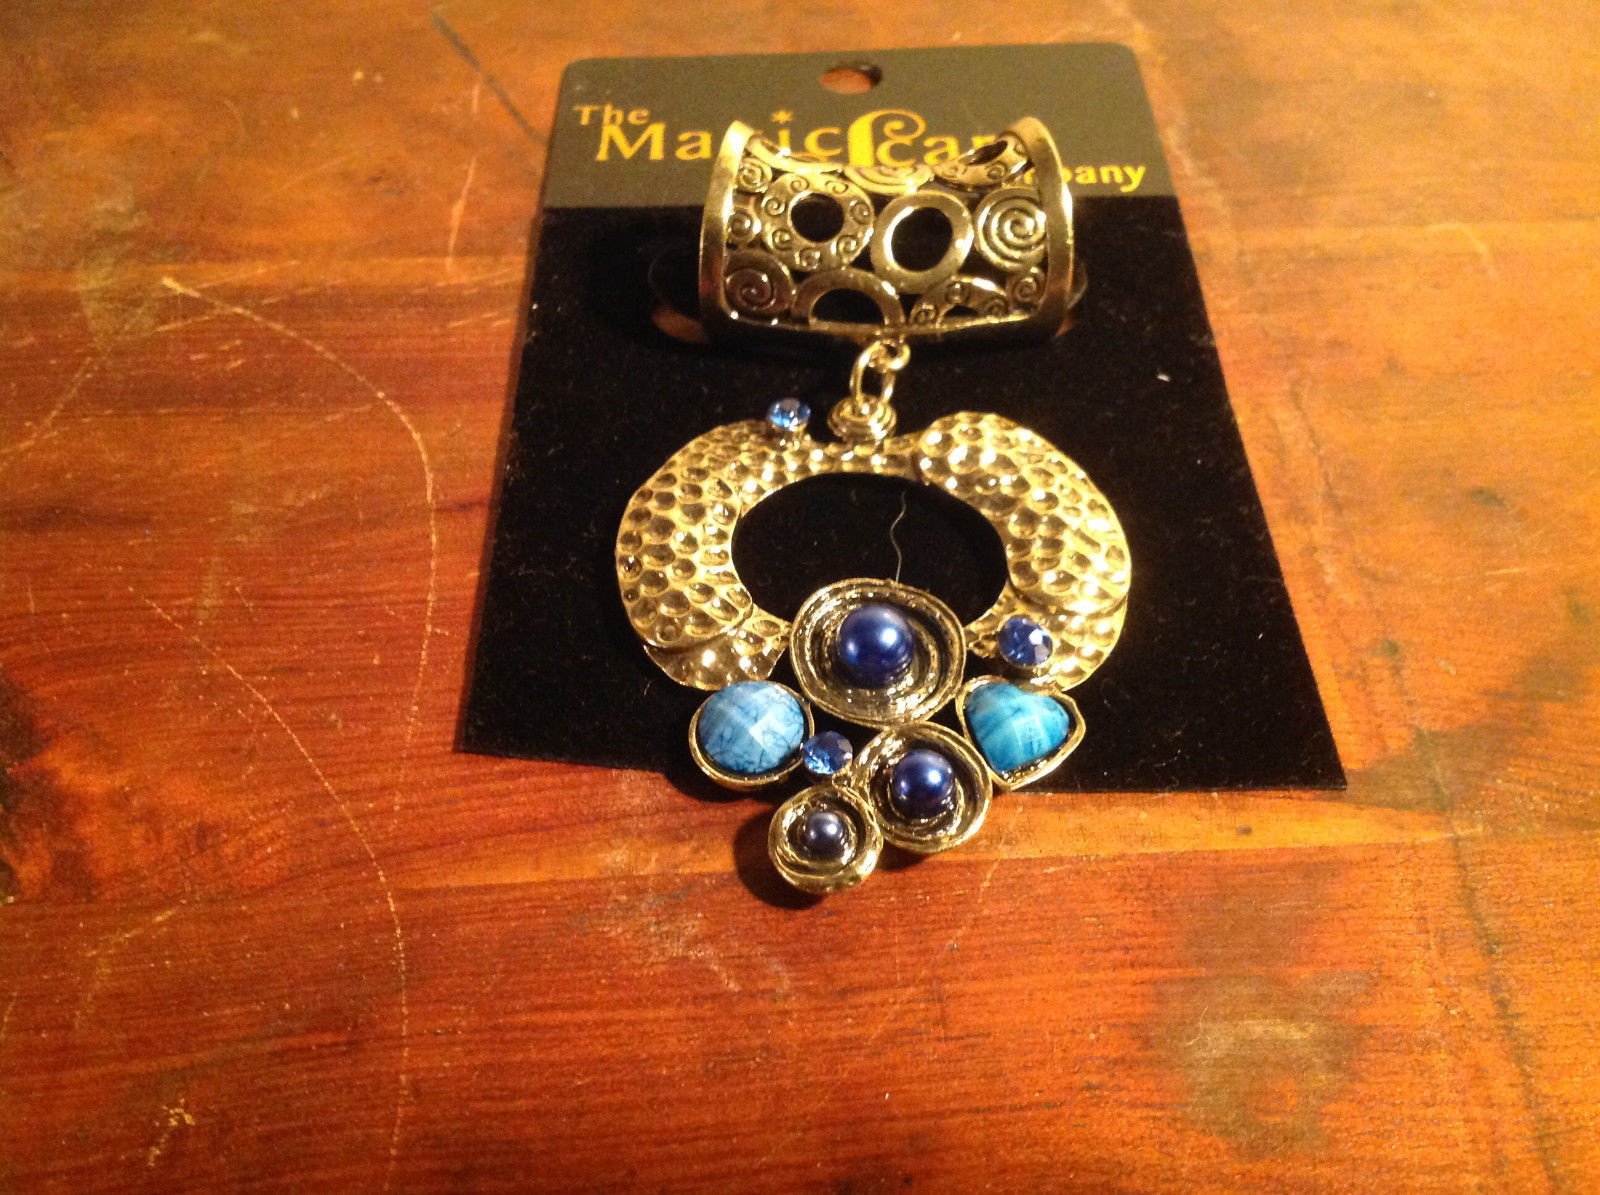 Cute Circular Gold Tone Scarf Pendant with Blue Beads Stones and Crystals